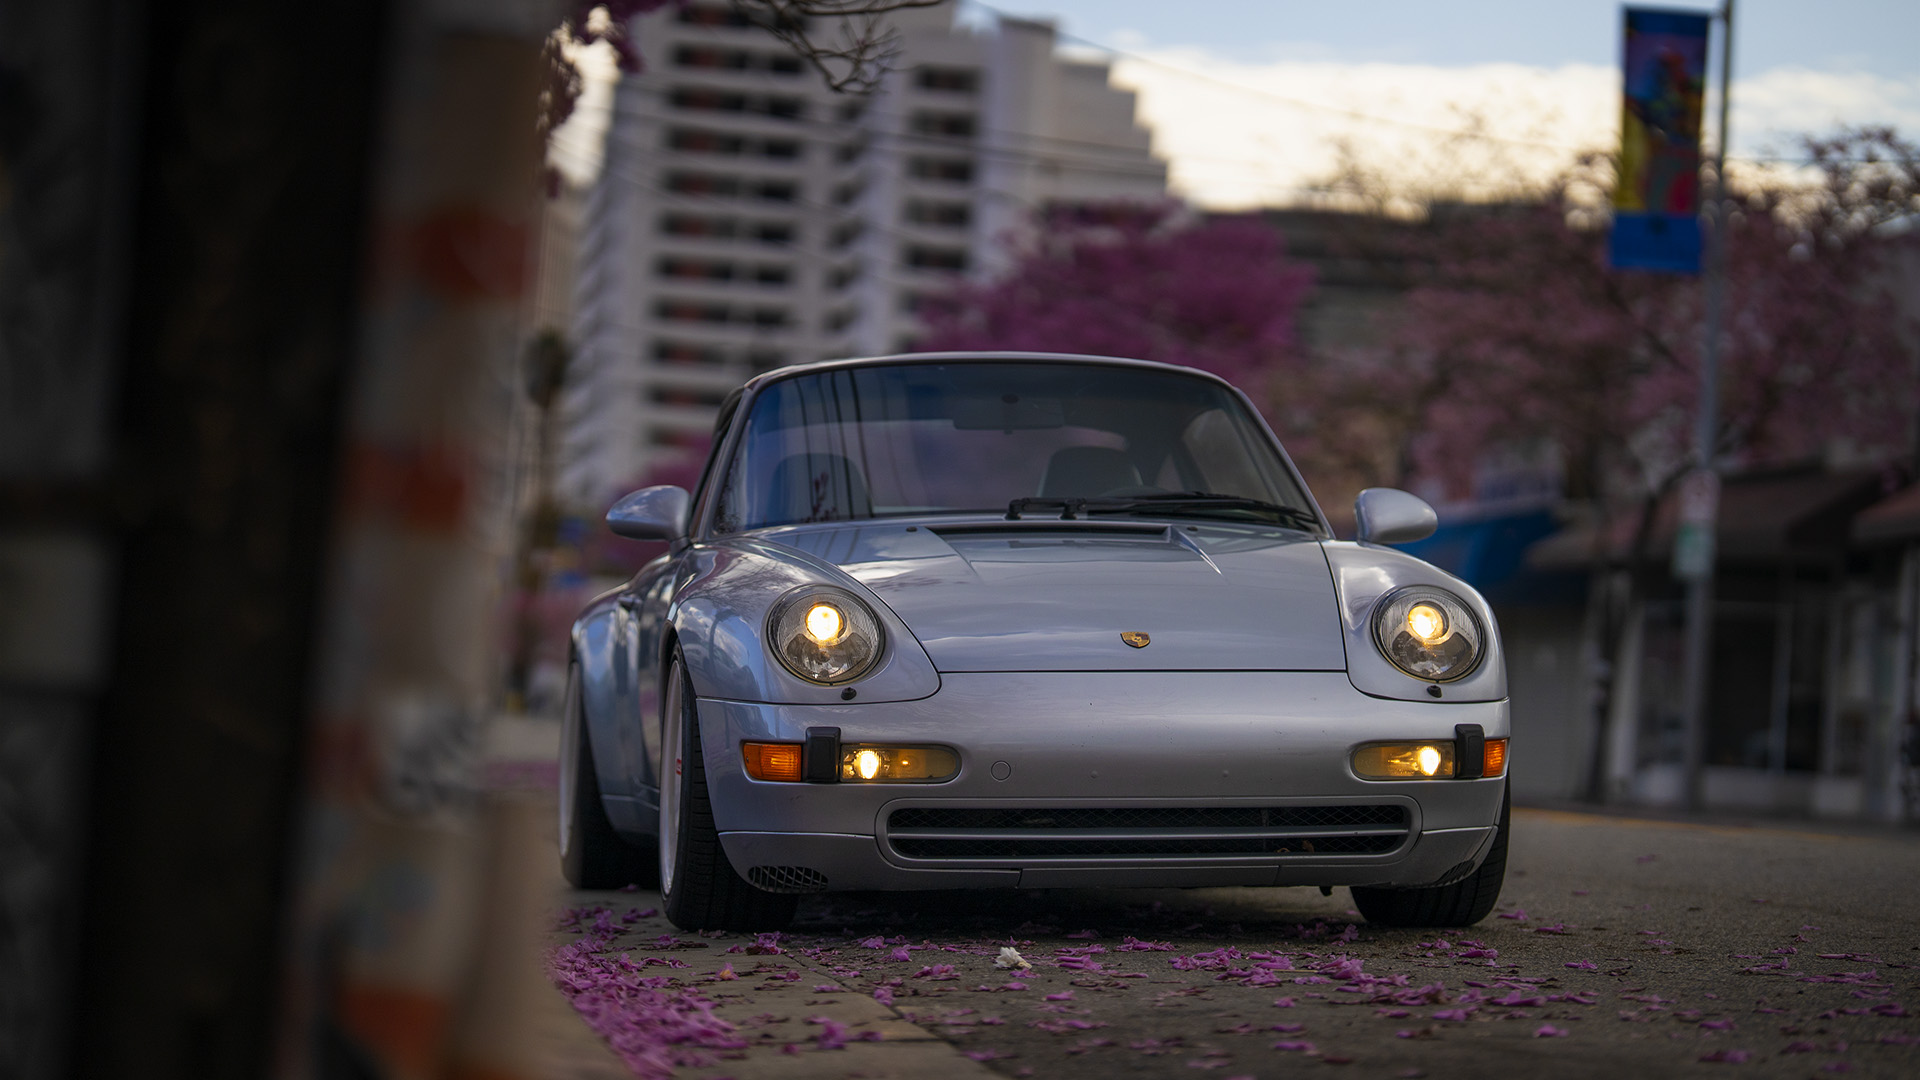 Engineered For Every Day - Porsche 993 911 Carrera 2